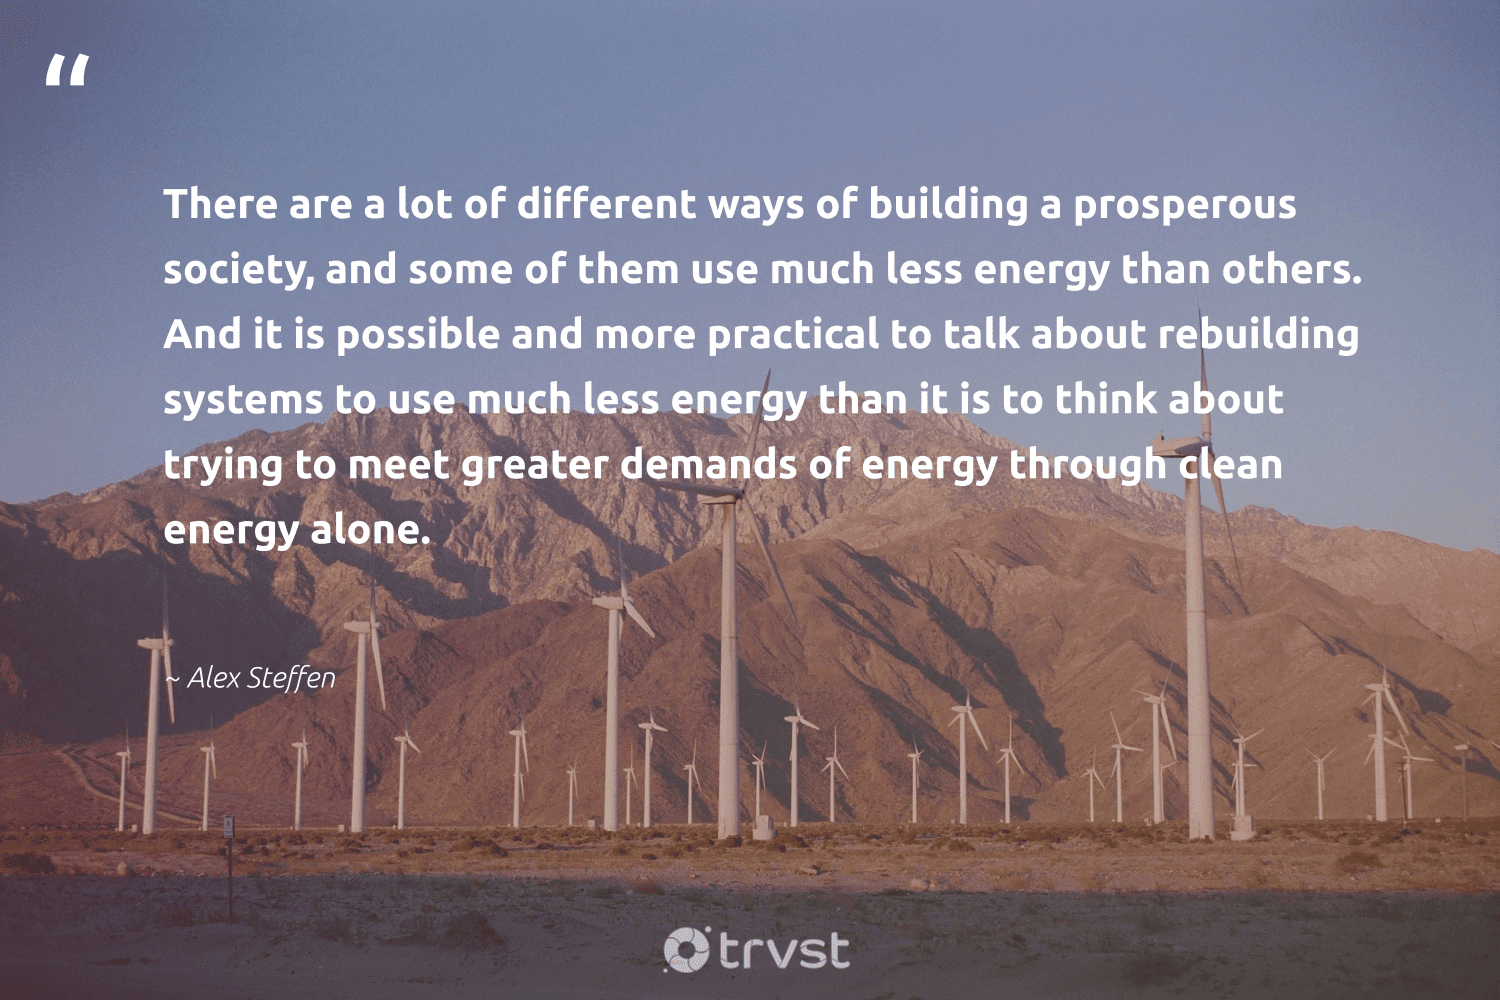 """""""There are a lot of different ways of building a prosperous society, and some of them use much less energy than others. And it is possible and more practical to talk about rebuilding systems to use much less energy than it is to think about trying to meet greater demands of energy through clean energy alone.""""  - Alex Steffen #trvst #quotes #renewableenergy #energy #cleanenergy #society #lowcarbon #carboncapture #carbonfree #socialimpact #renewable #ecofriendly"""